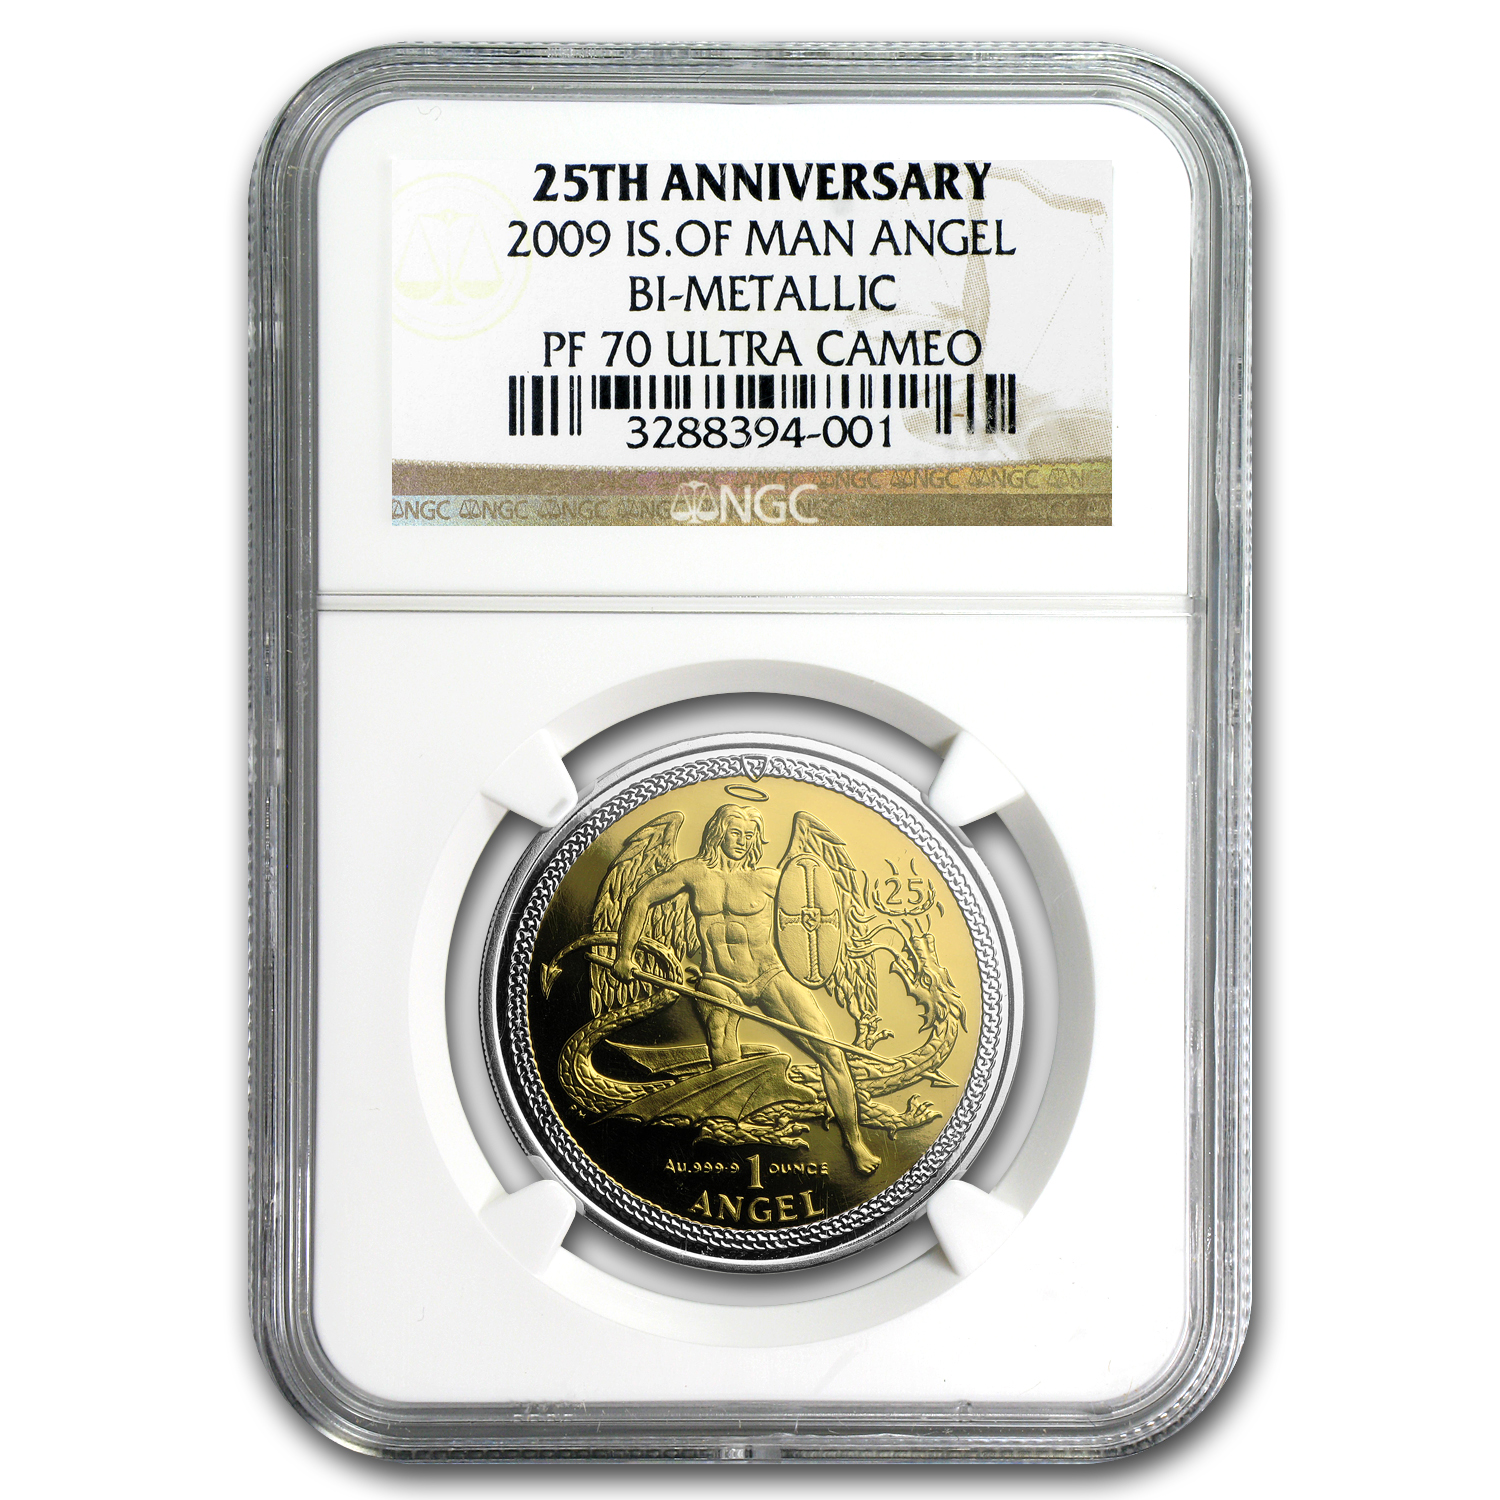 2009 Isle of Man Bi-Metallic Angel PF-70 NGC (25th Anniv)